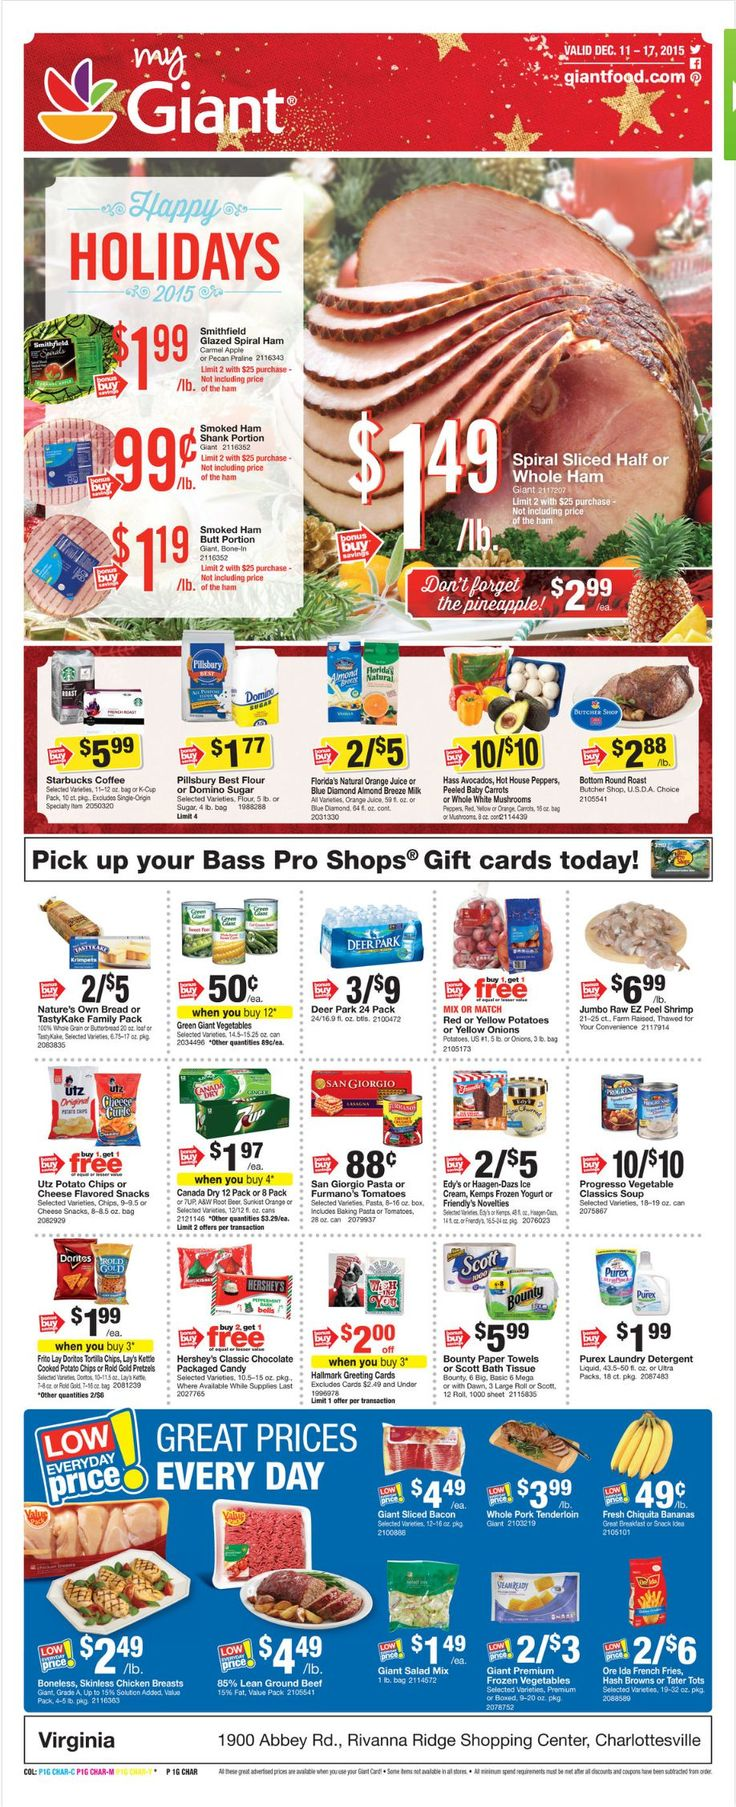 Giant Food Weekly Ad December 11 - 17, 2015 - http://www.olcatalog.com/grocery/giant-food-weekly-ad.html